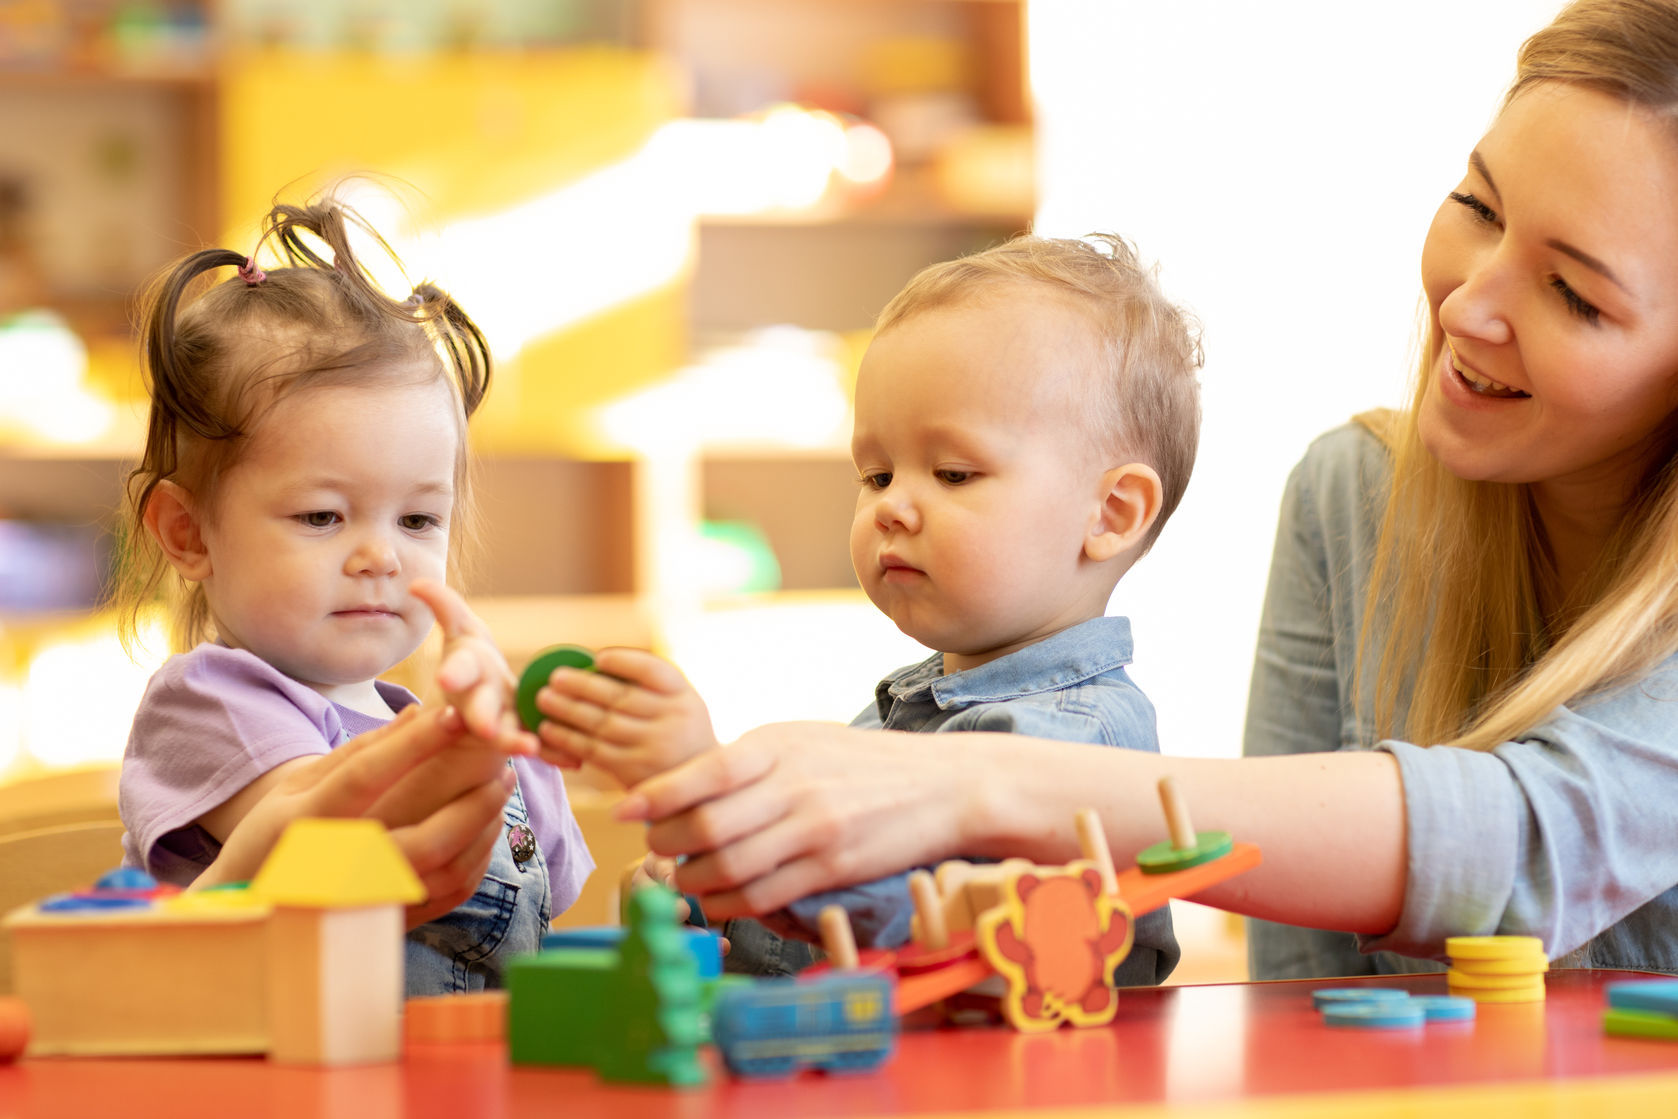 Children learning shapes at daycare